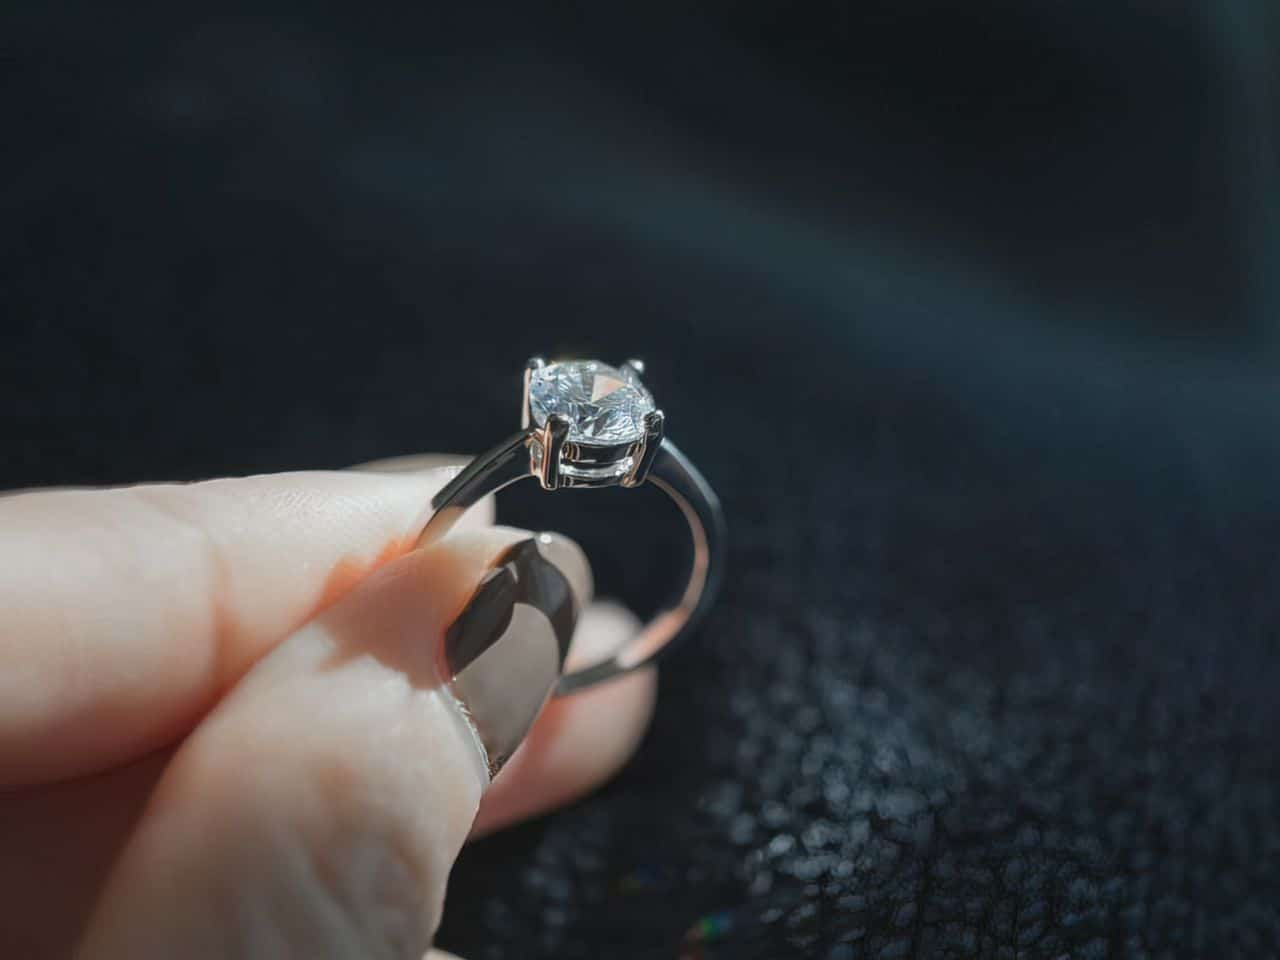 woman with black nails holding diamond ring